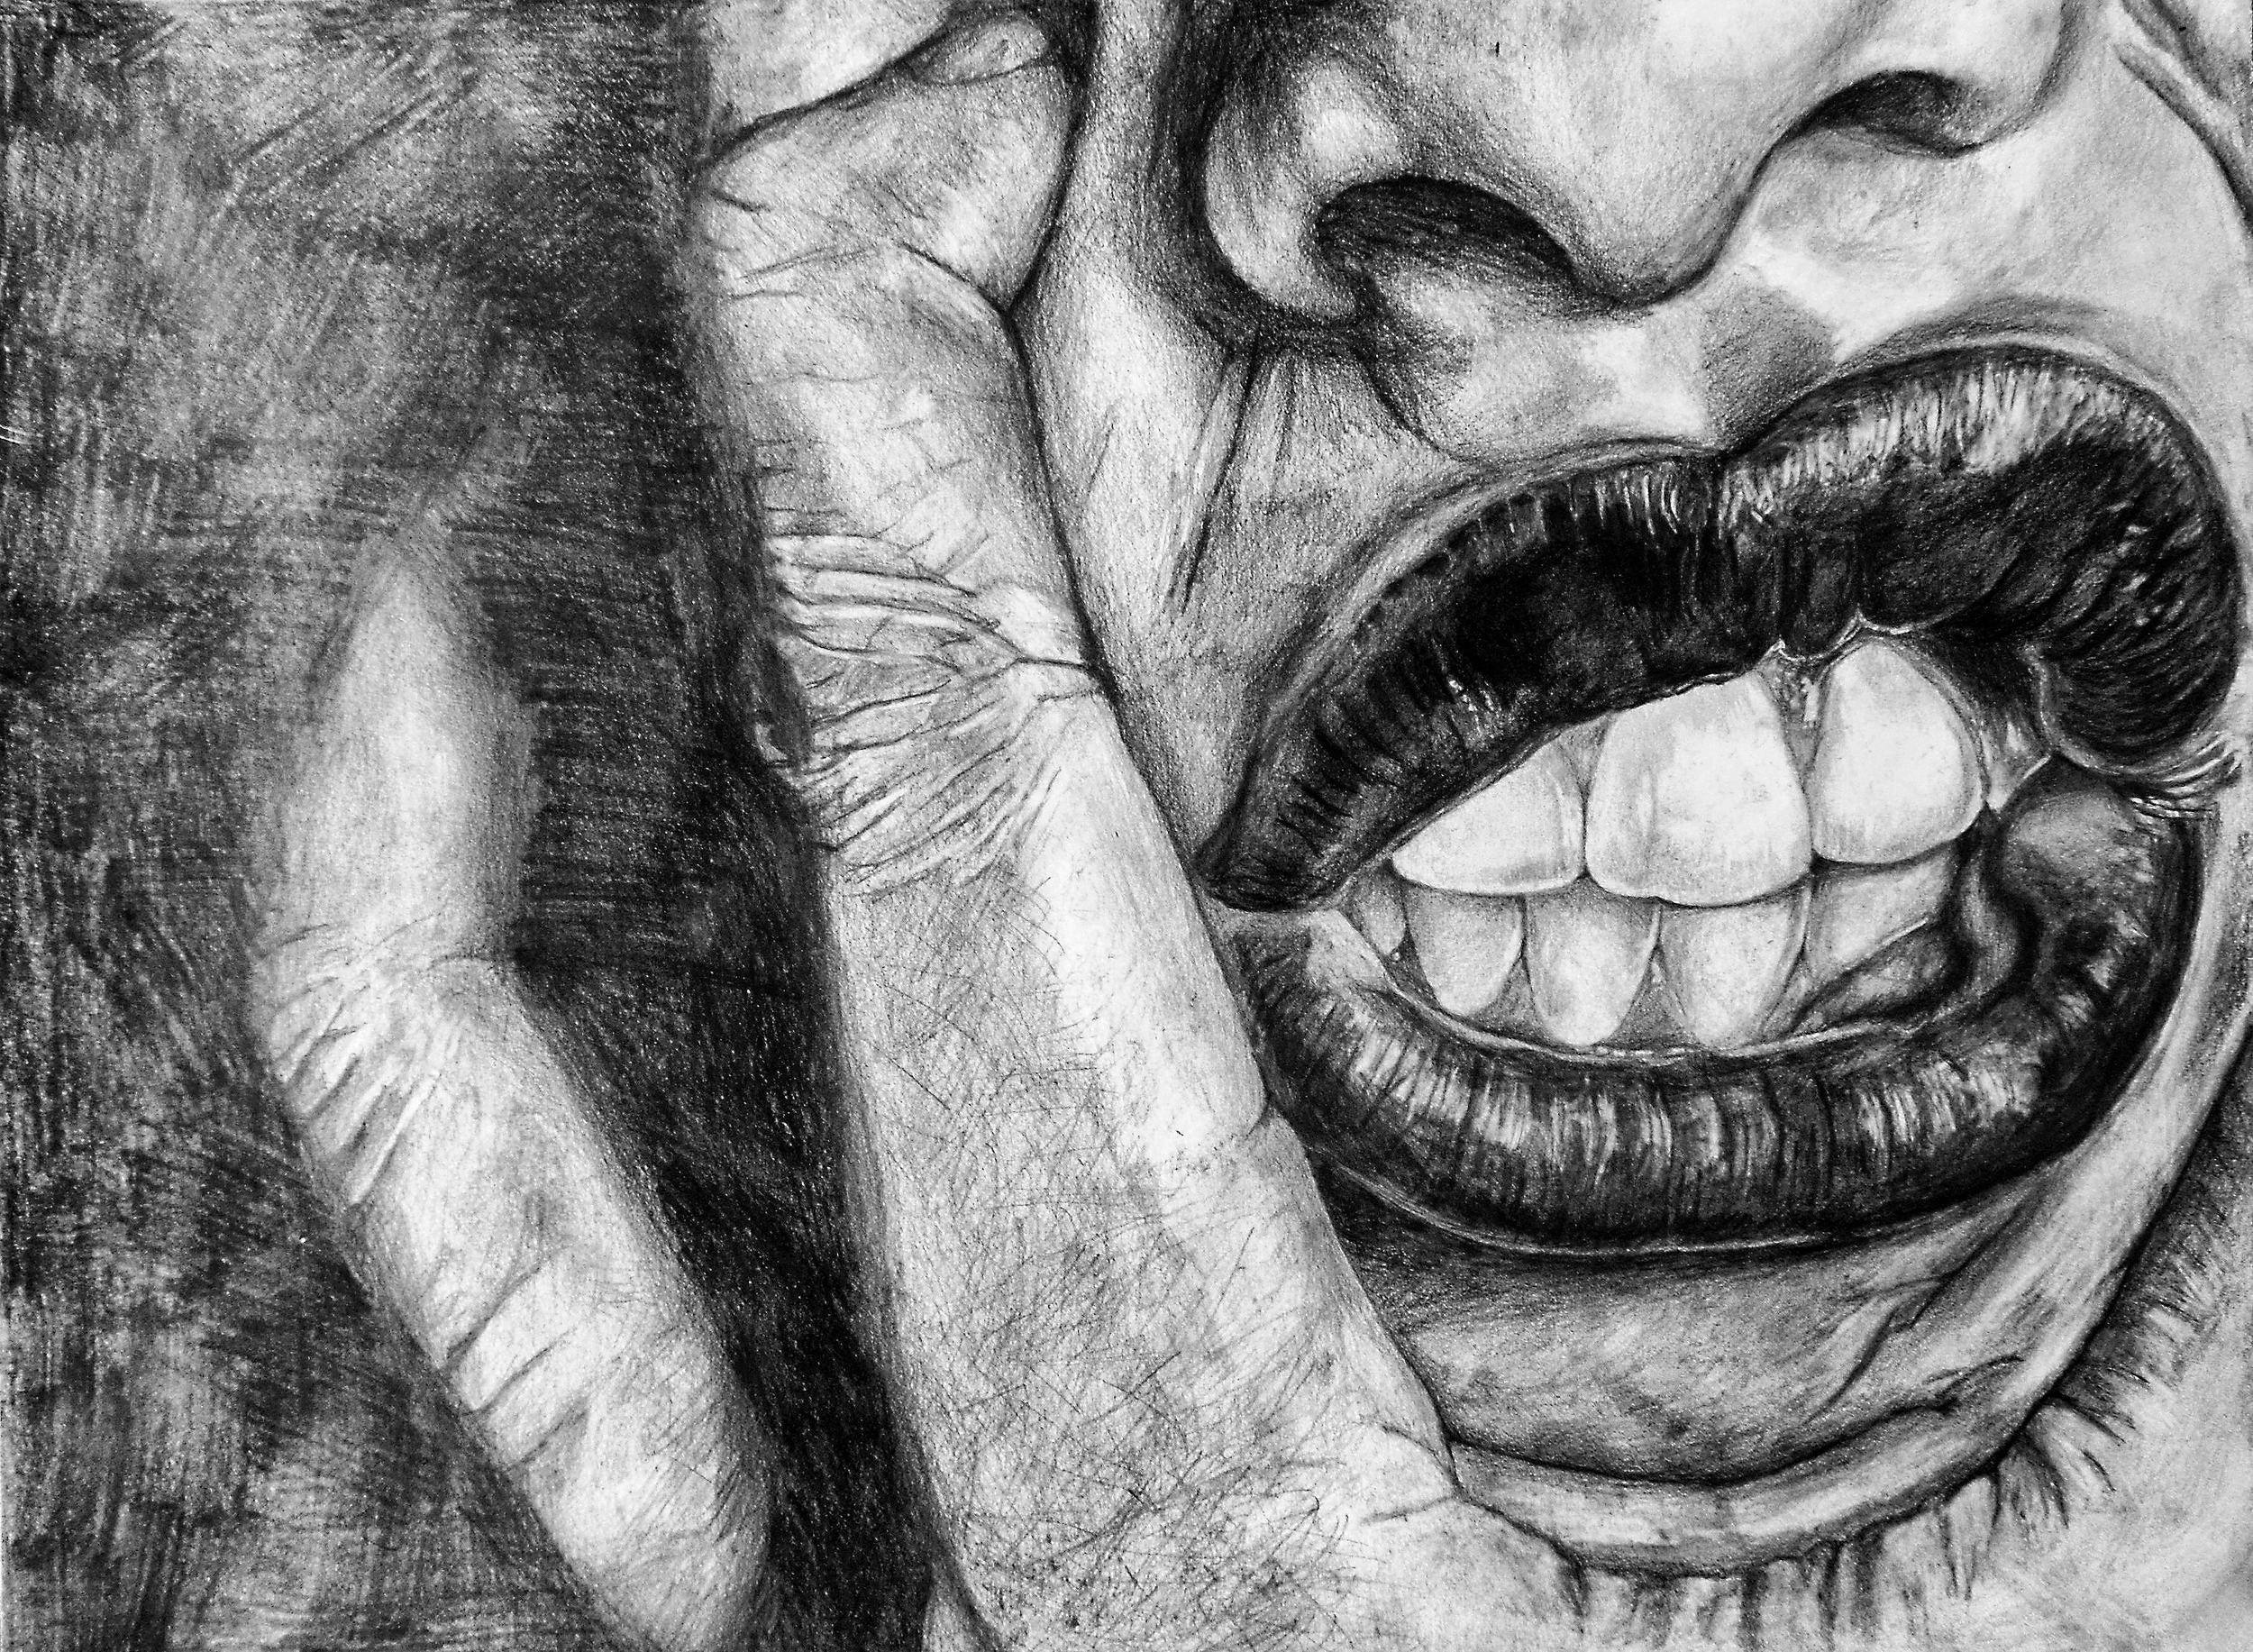 Stress - 2' X 3.5' - Graphite on Paper - SOLD